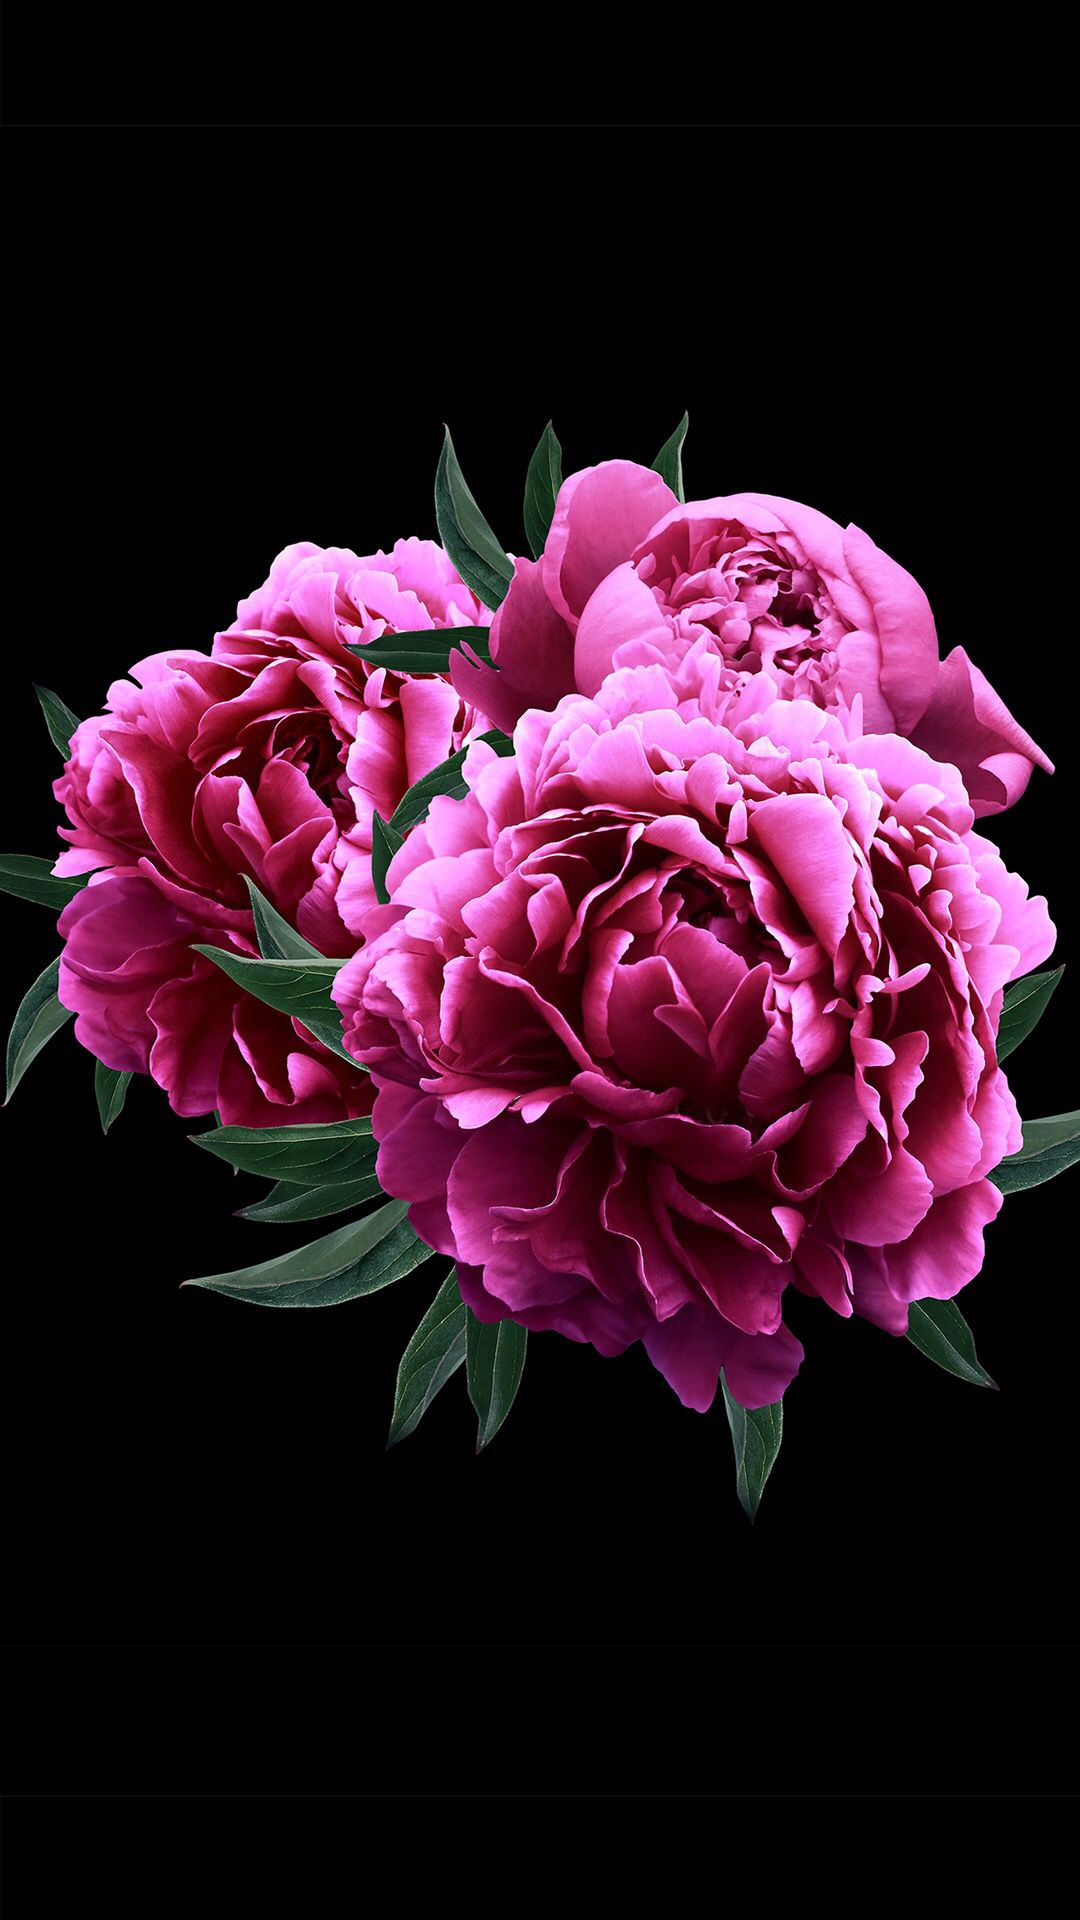 Pin By Ms Mf Gooonnette On Art Flowers Black Background Peony Wallpaper Blossoms Art